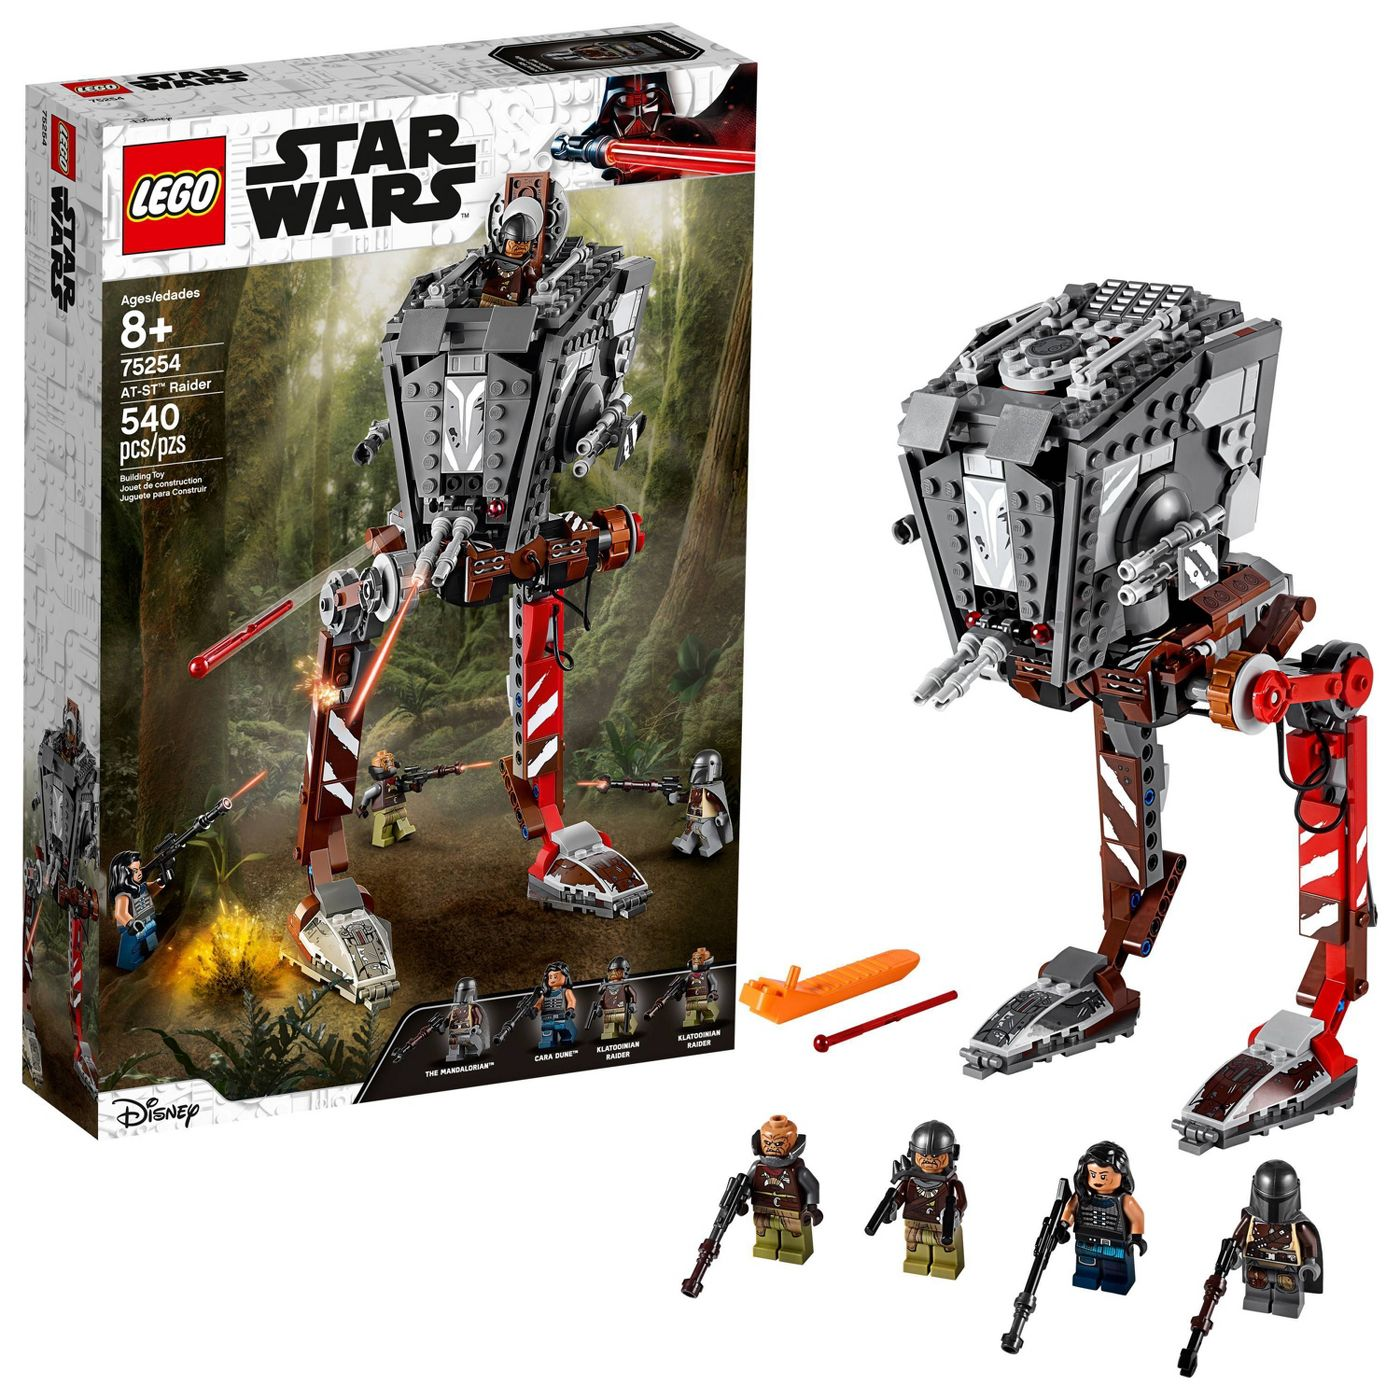 TM AT-ST Raider Walker Lego Set 4